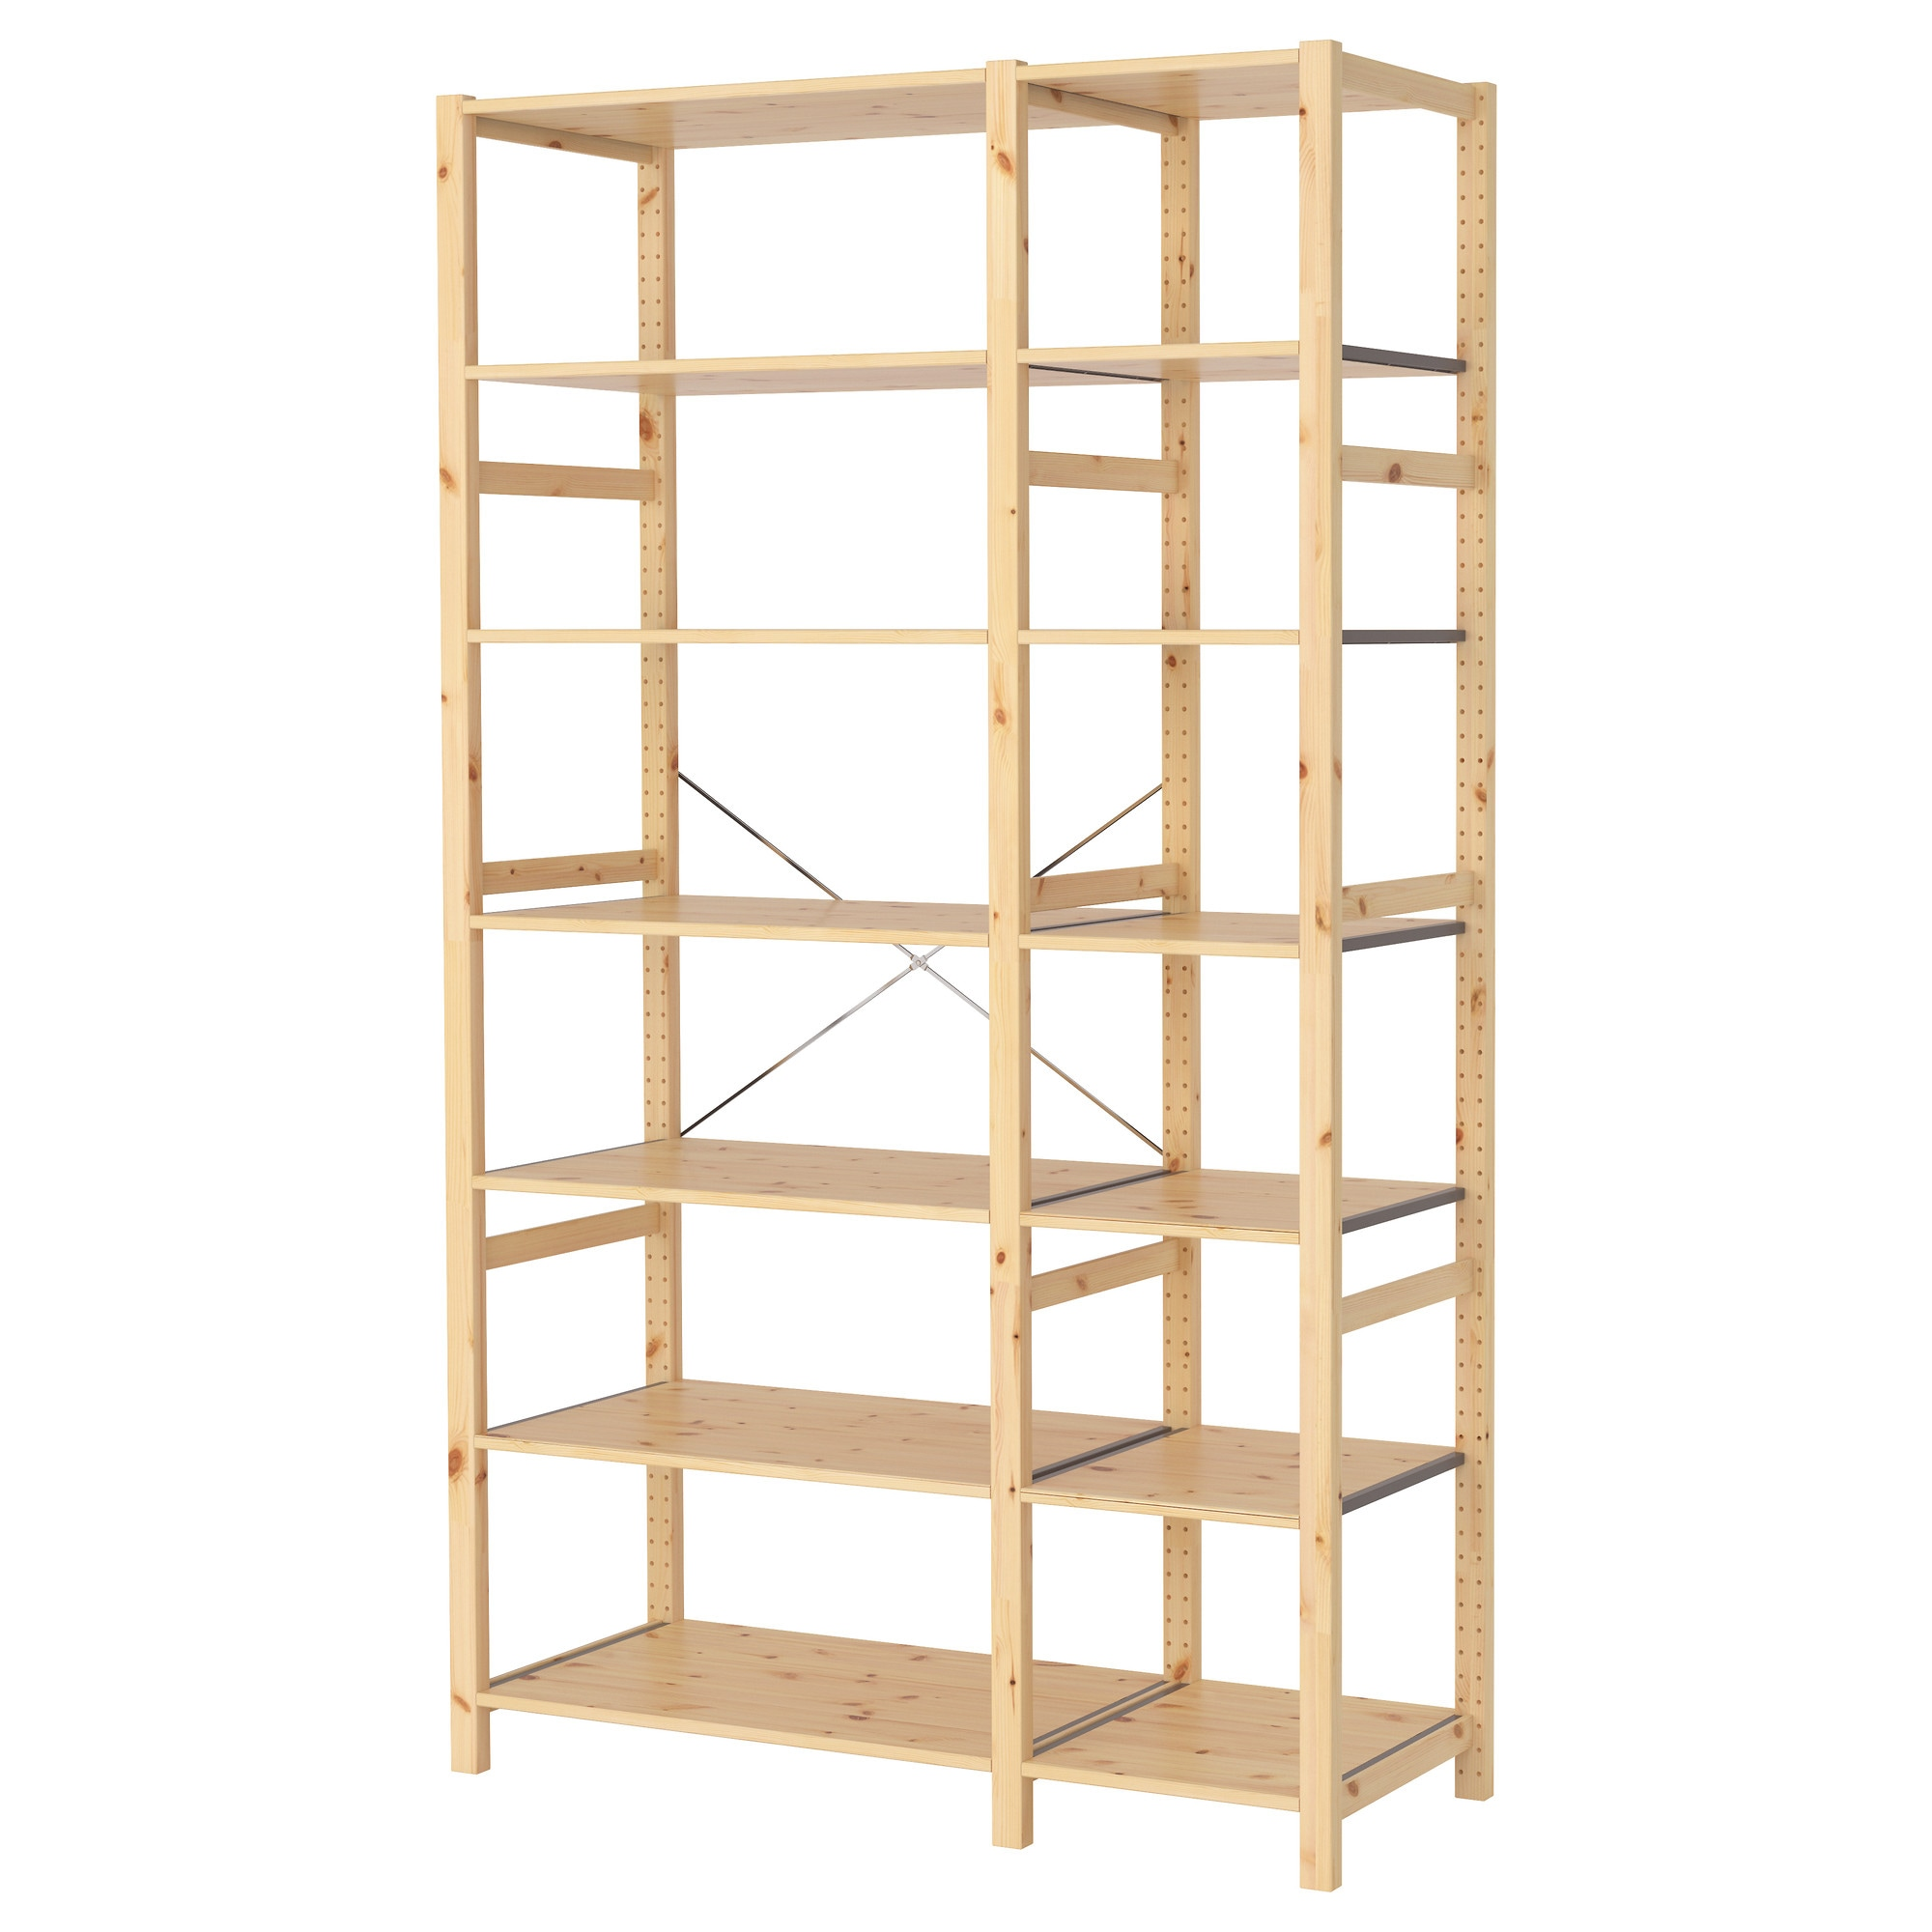 Ikea Ivar Regal ivar 2 section shelving unit ikea